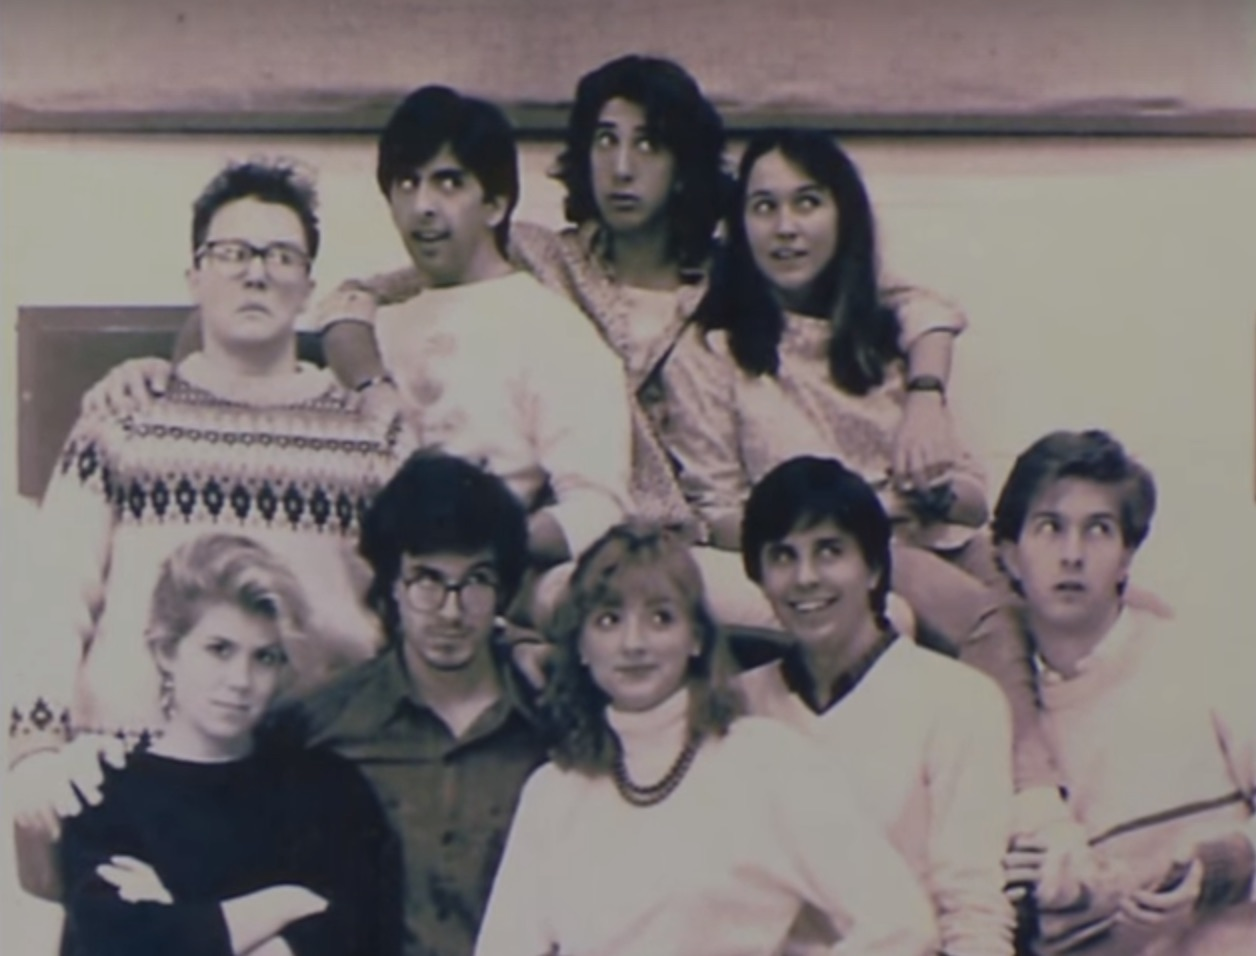 Stephen Colbert and David Schwimmer went to college together and have the picture to prove it